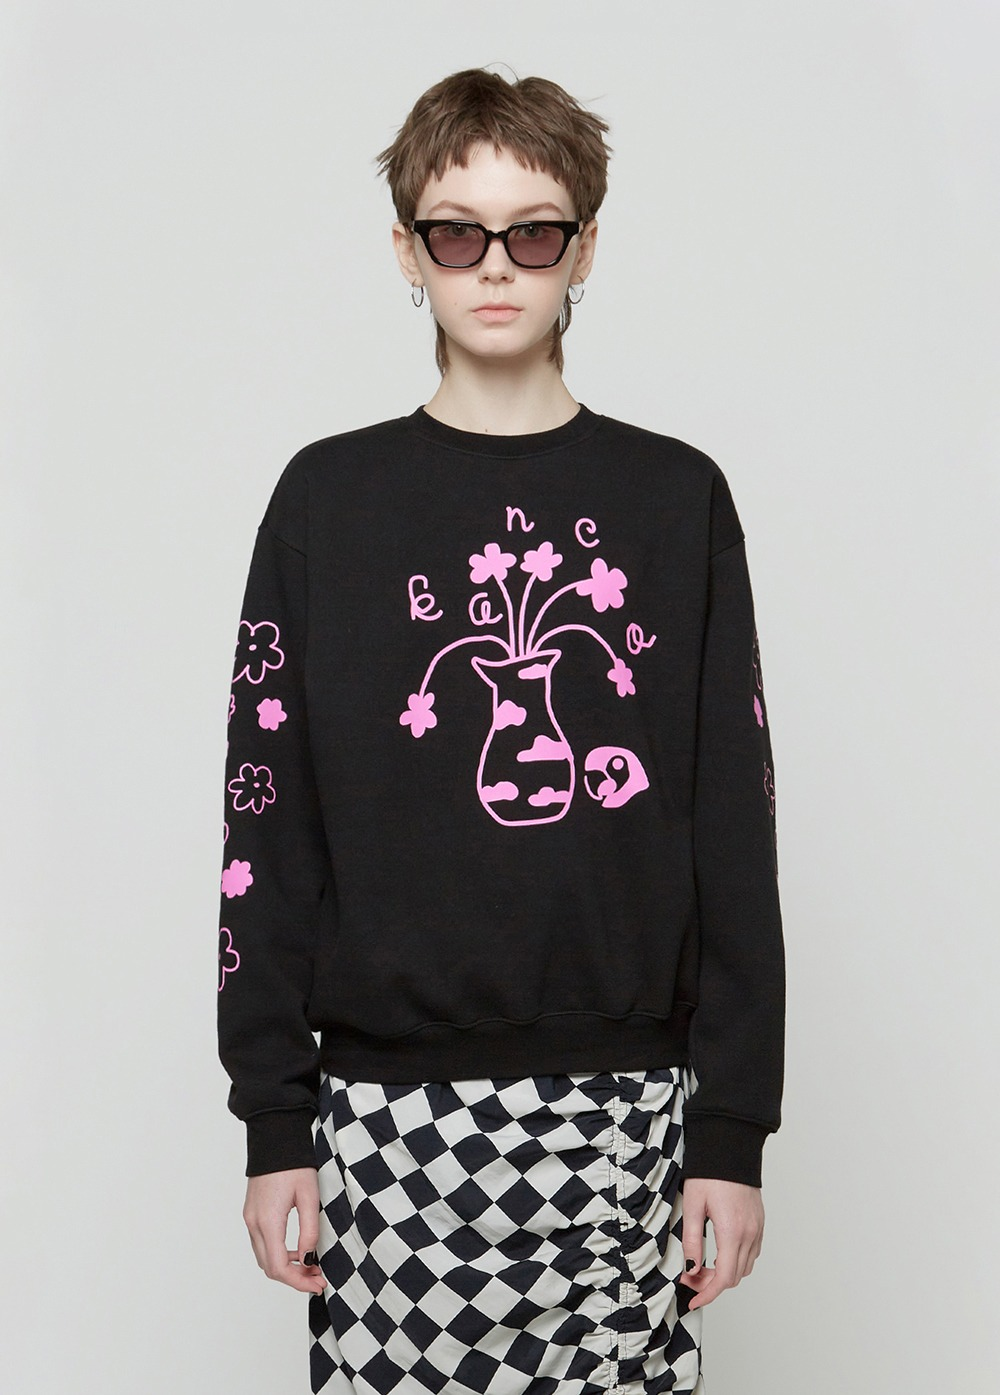 KANCO FLOWER VASE SWEATSHIRT black